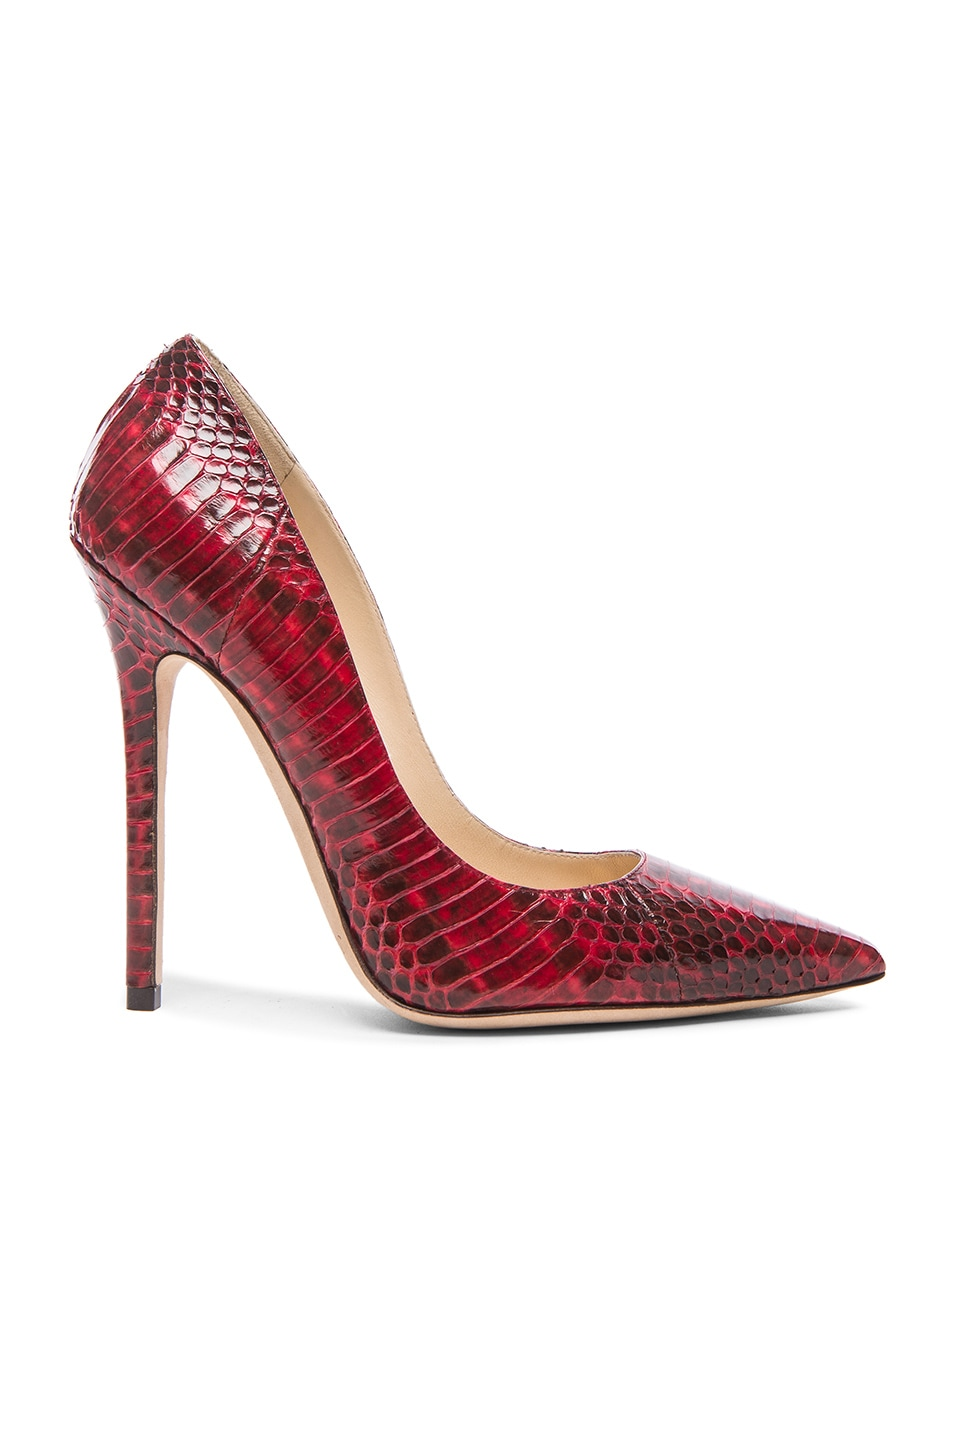 Image 1 of Jimmy Choo Anouk Elaphe Snakeskim Pumps in Red